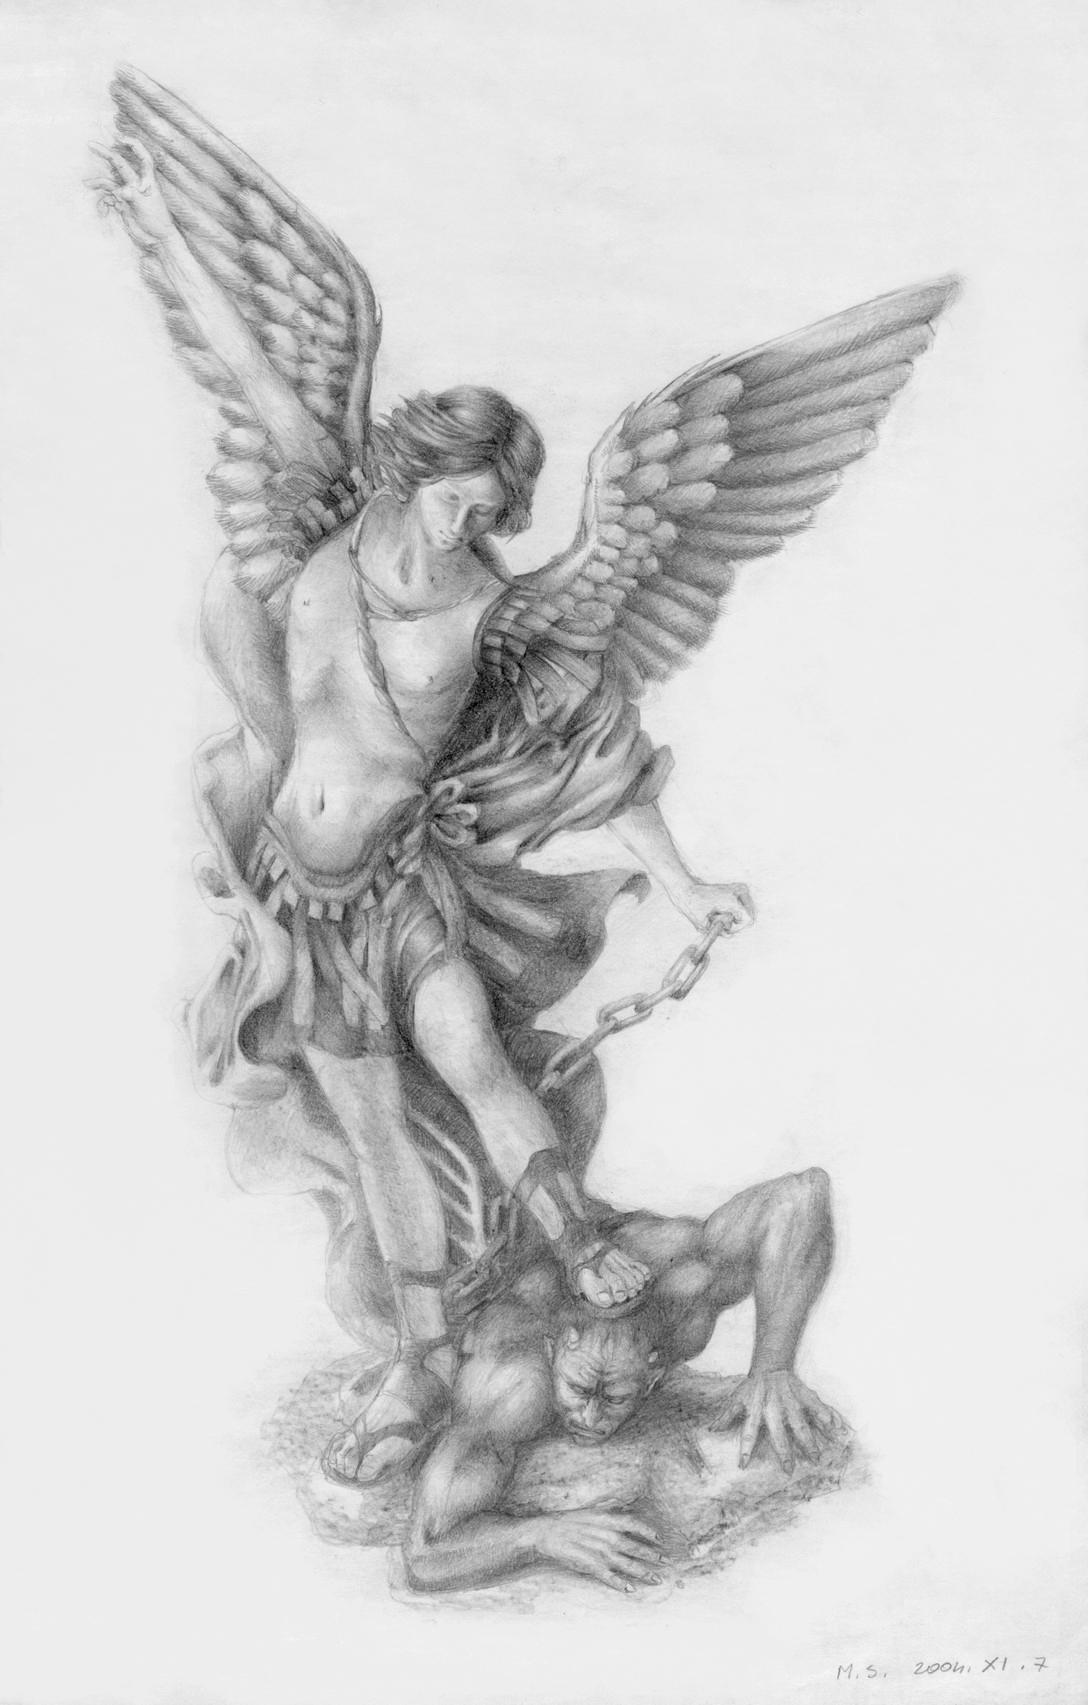 St. Michael defeating devil by MikhailD on DeviantArt